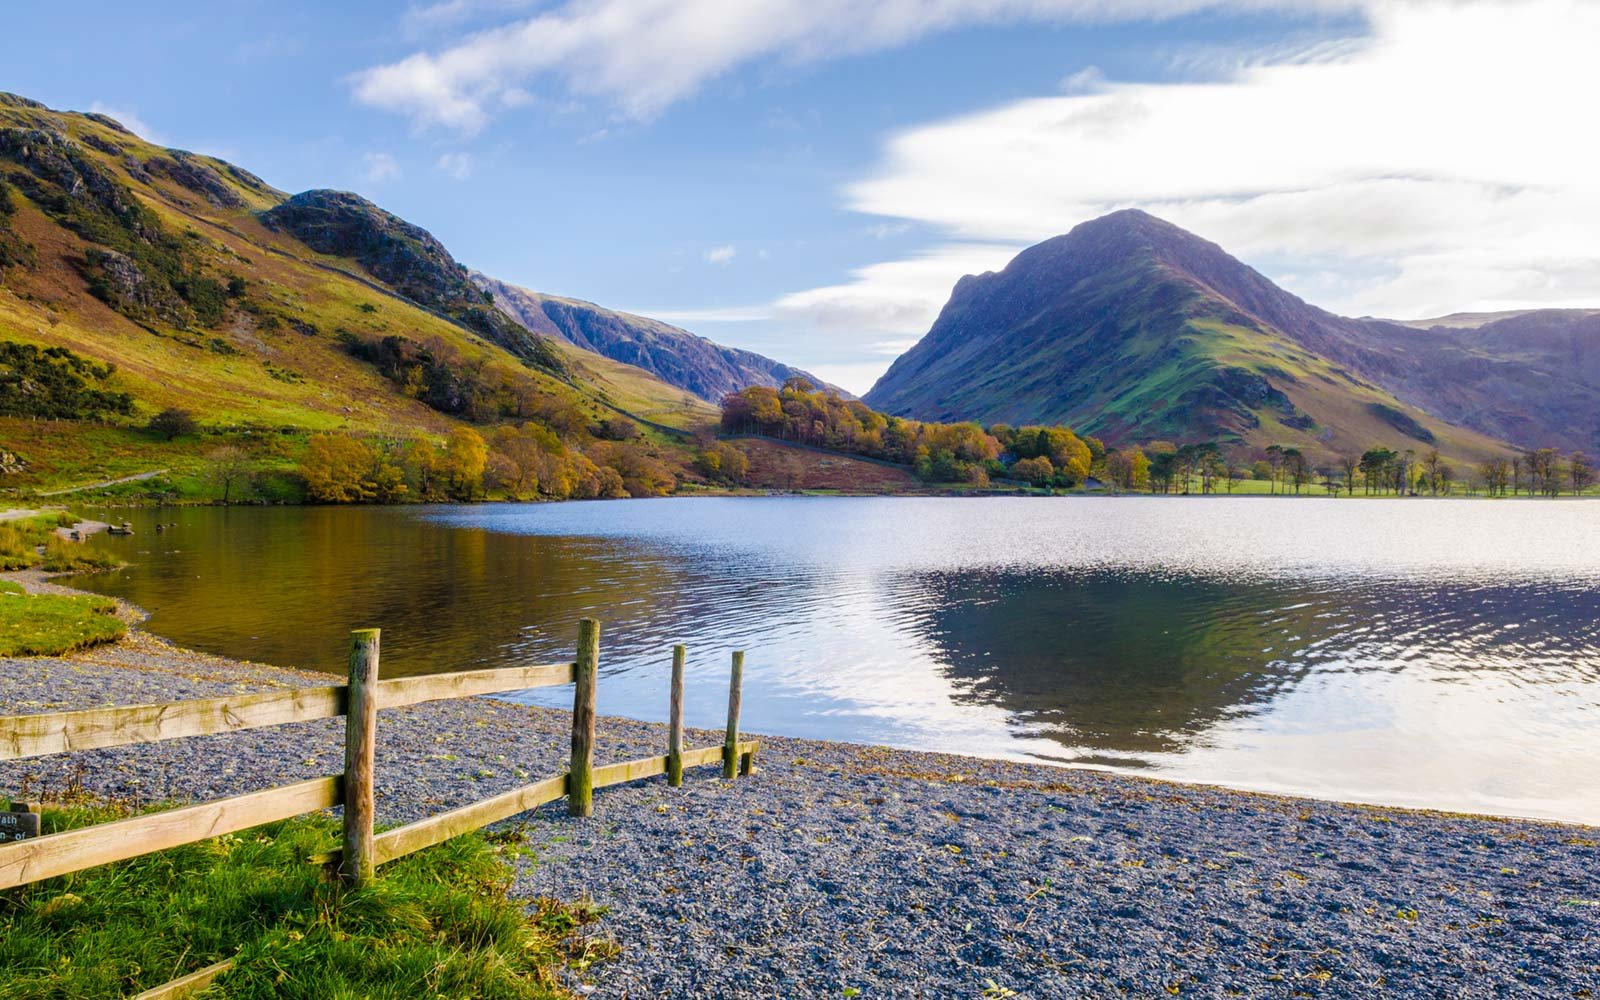 Buttermere lake, Lake District, England